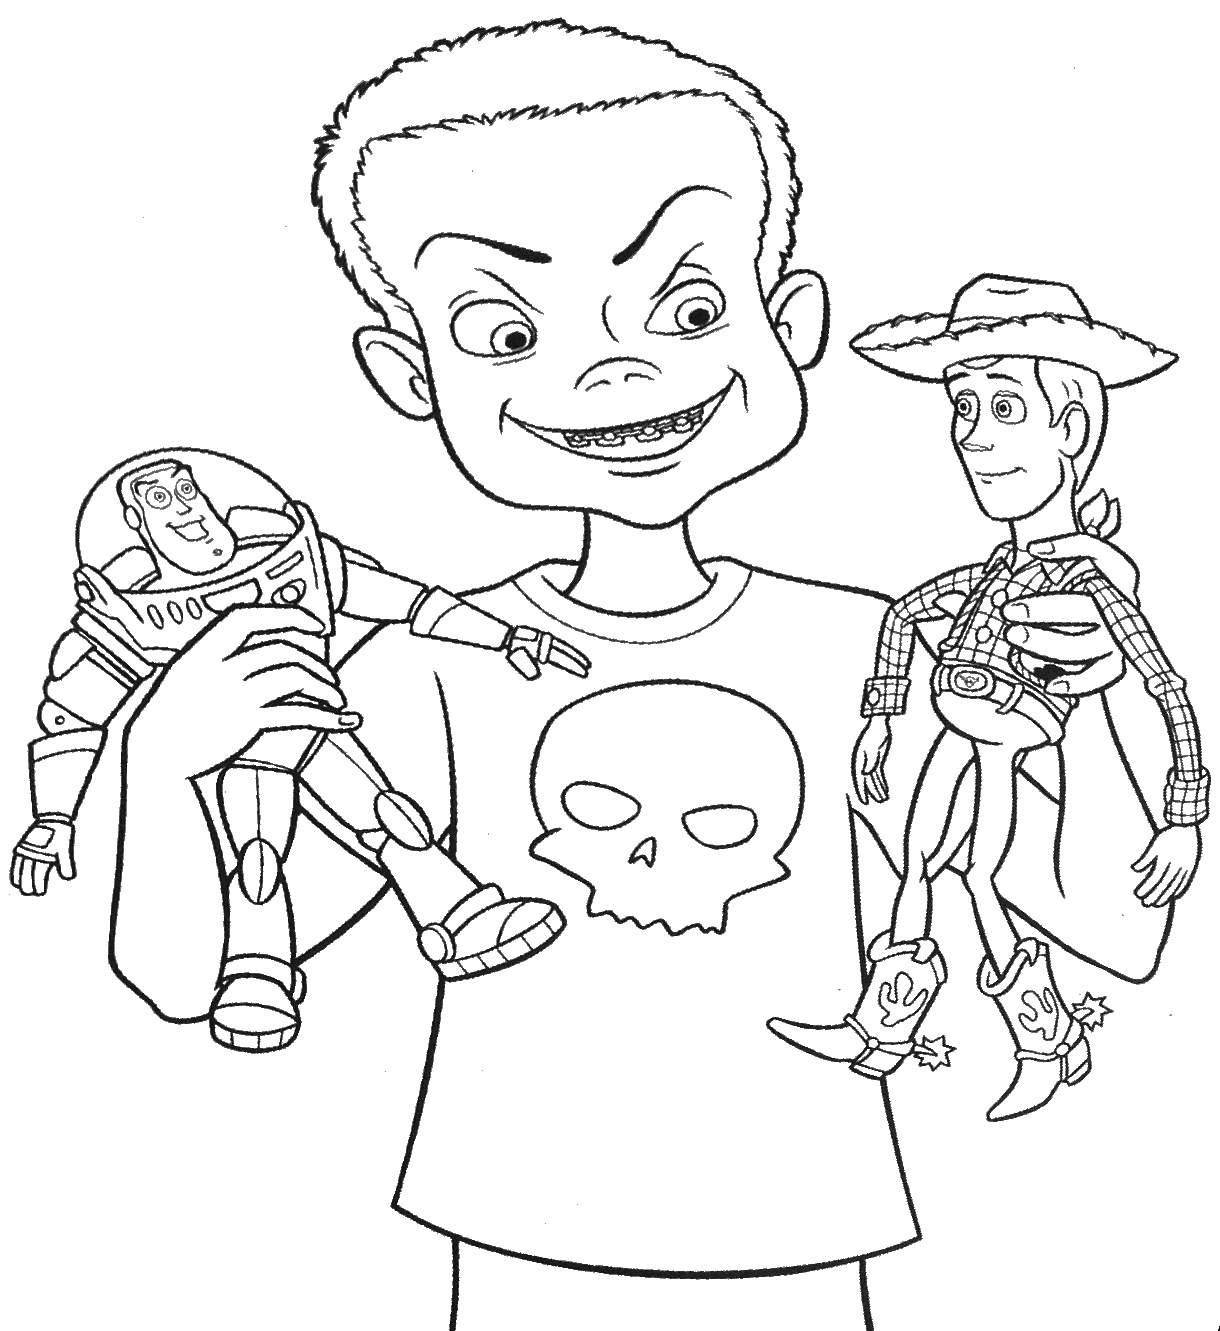 Woody From Toy Story Coloring Pages Coloring Pages